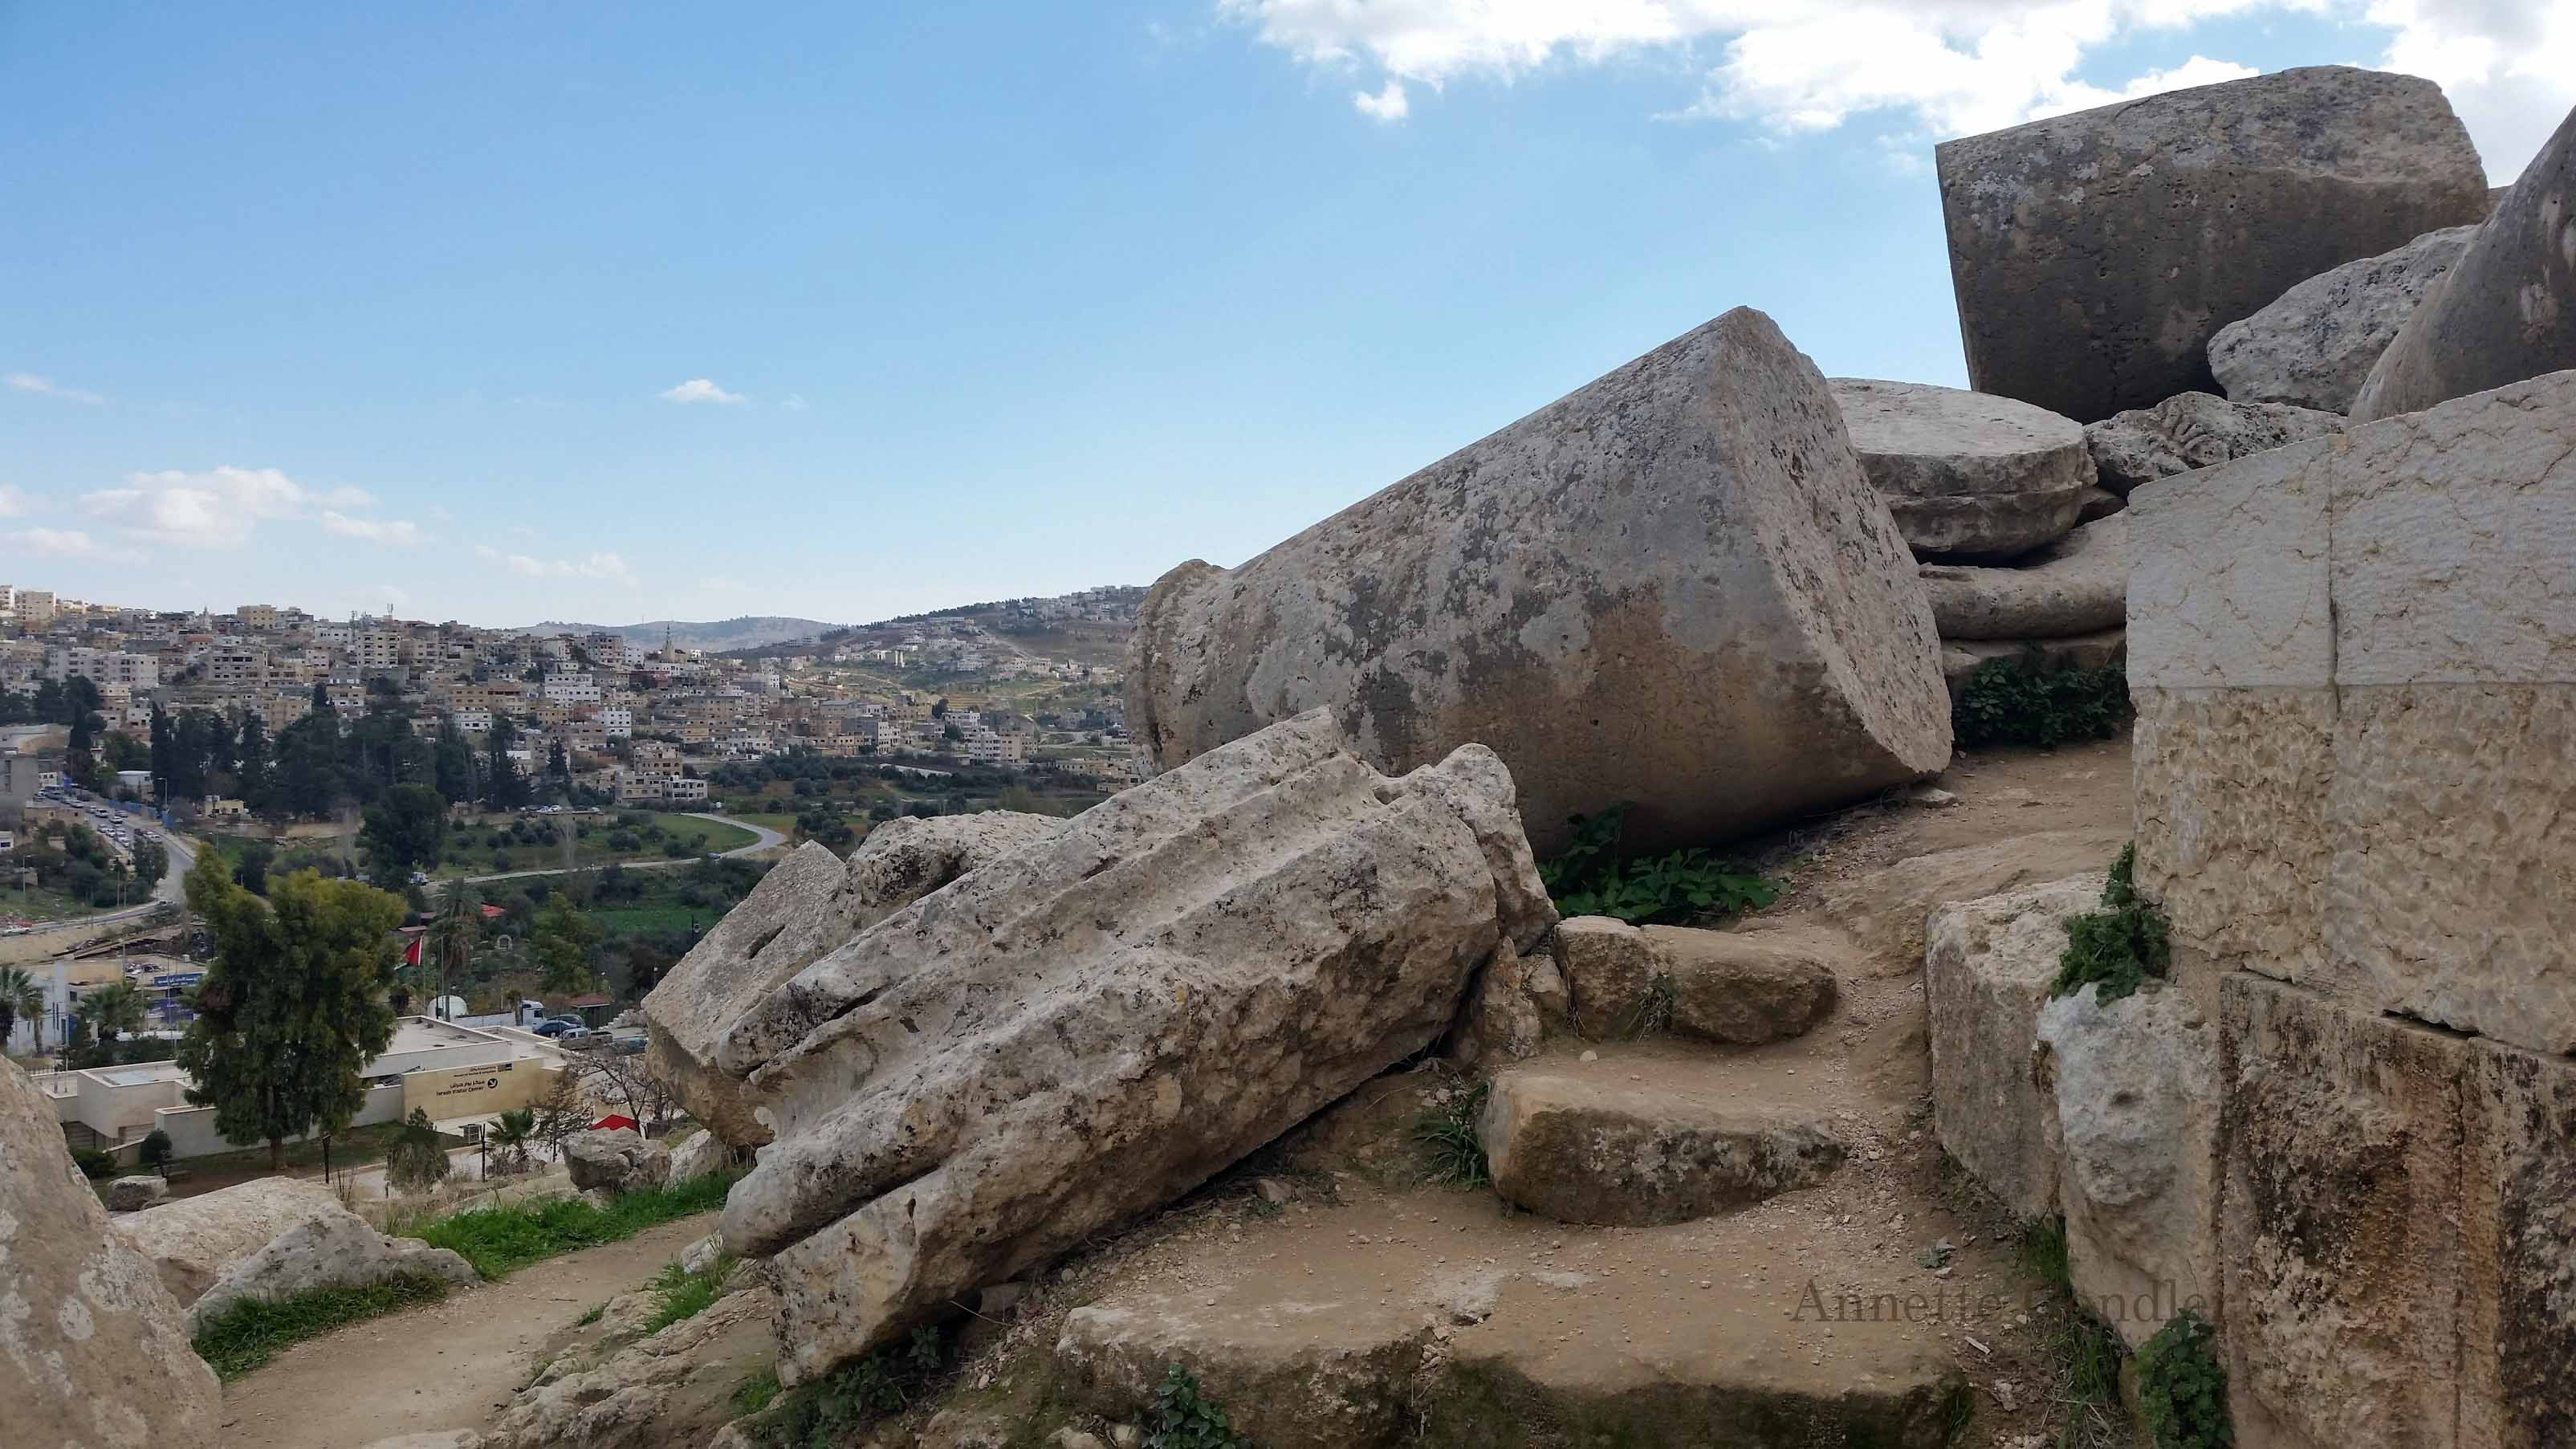 Fallen Roman columns lie about in Jerash